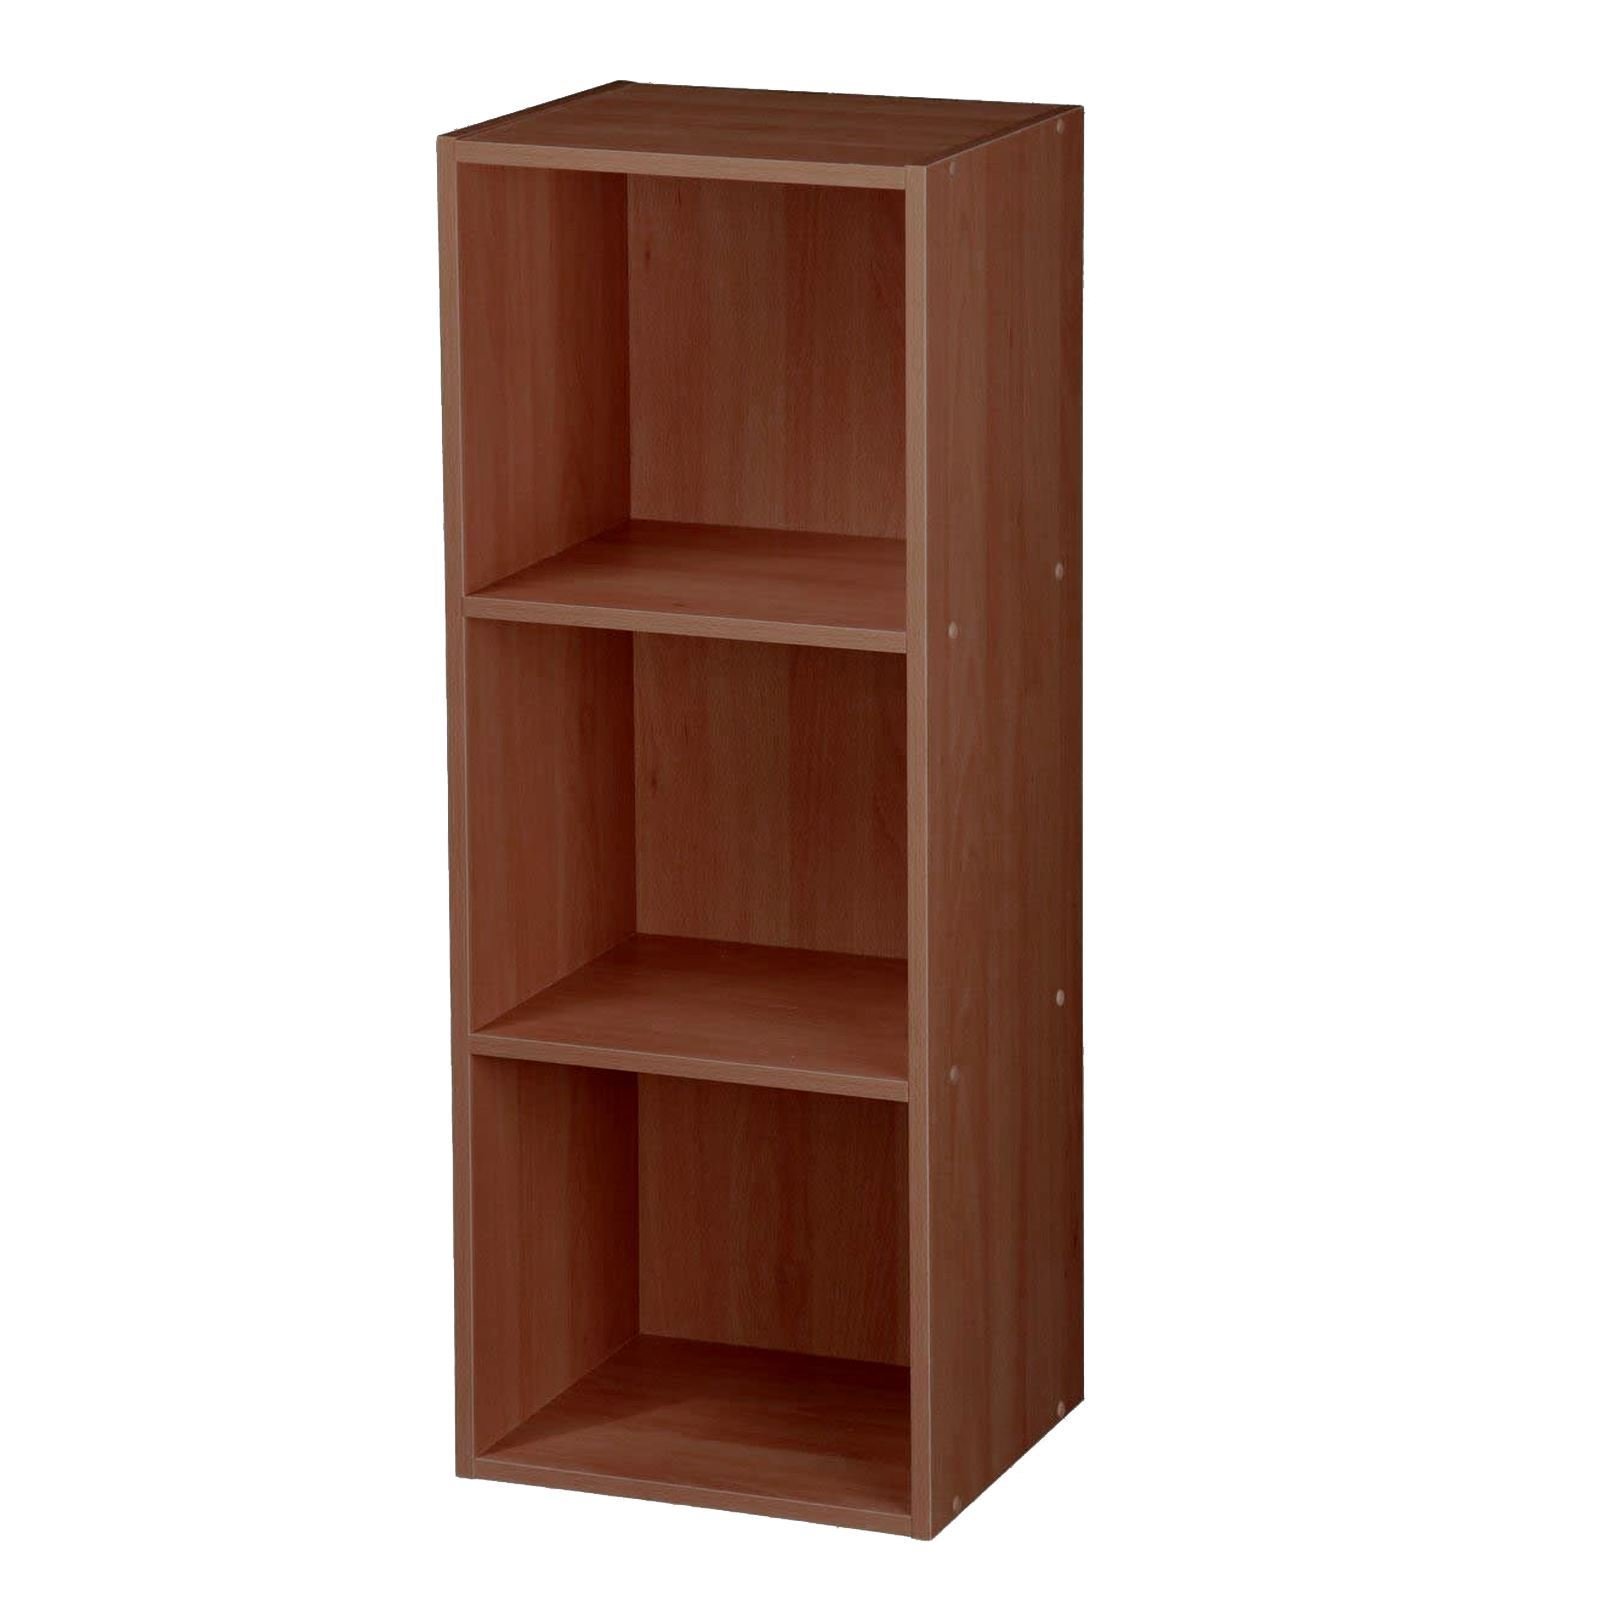 Office Storage Units Wooden Cube 2 3 4 Tier Storage Unit Strong Bookcase